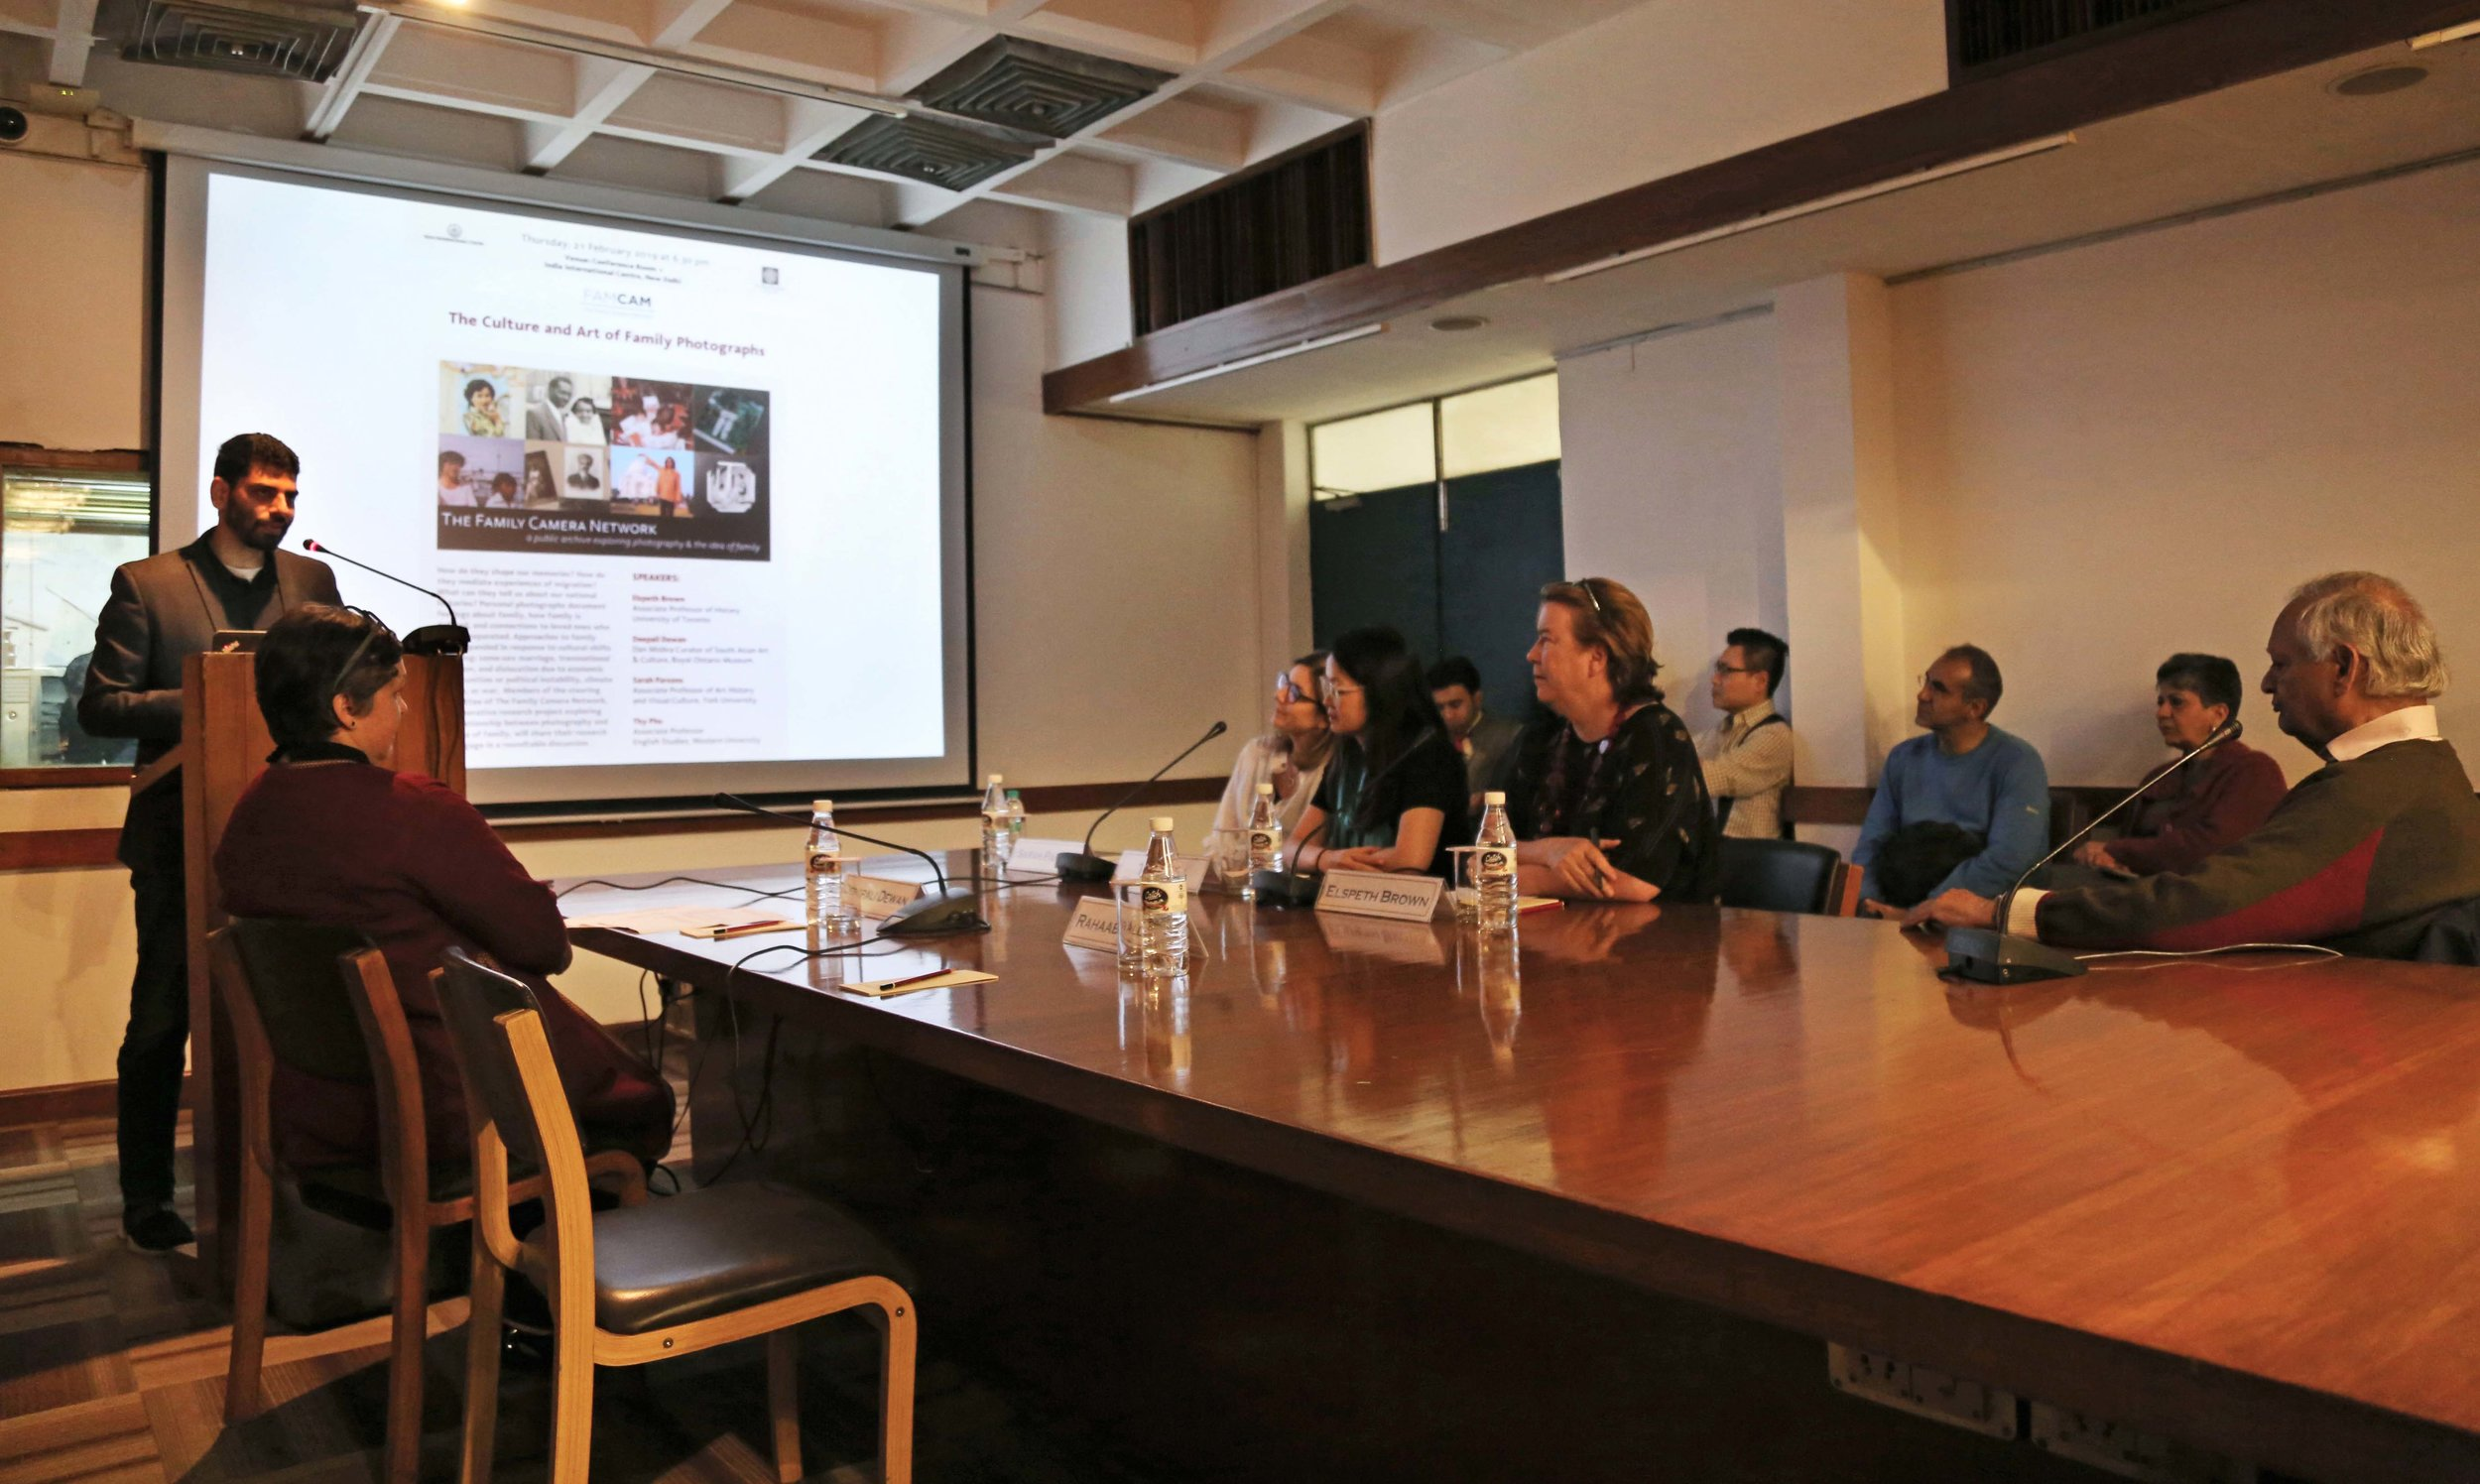 Rahaab Allana, curator of the Alkazi Foundation for the Arts, Introducing Panelists at IIC (Photo: Alkazi Photographic Archives, 2019).